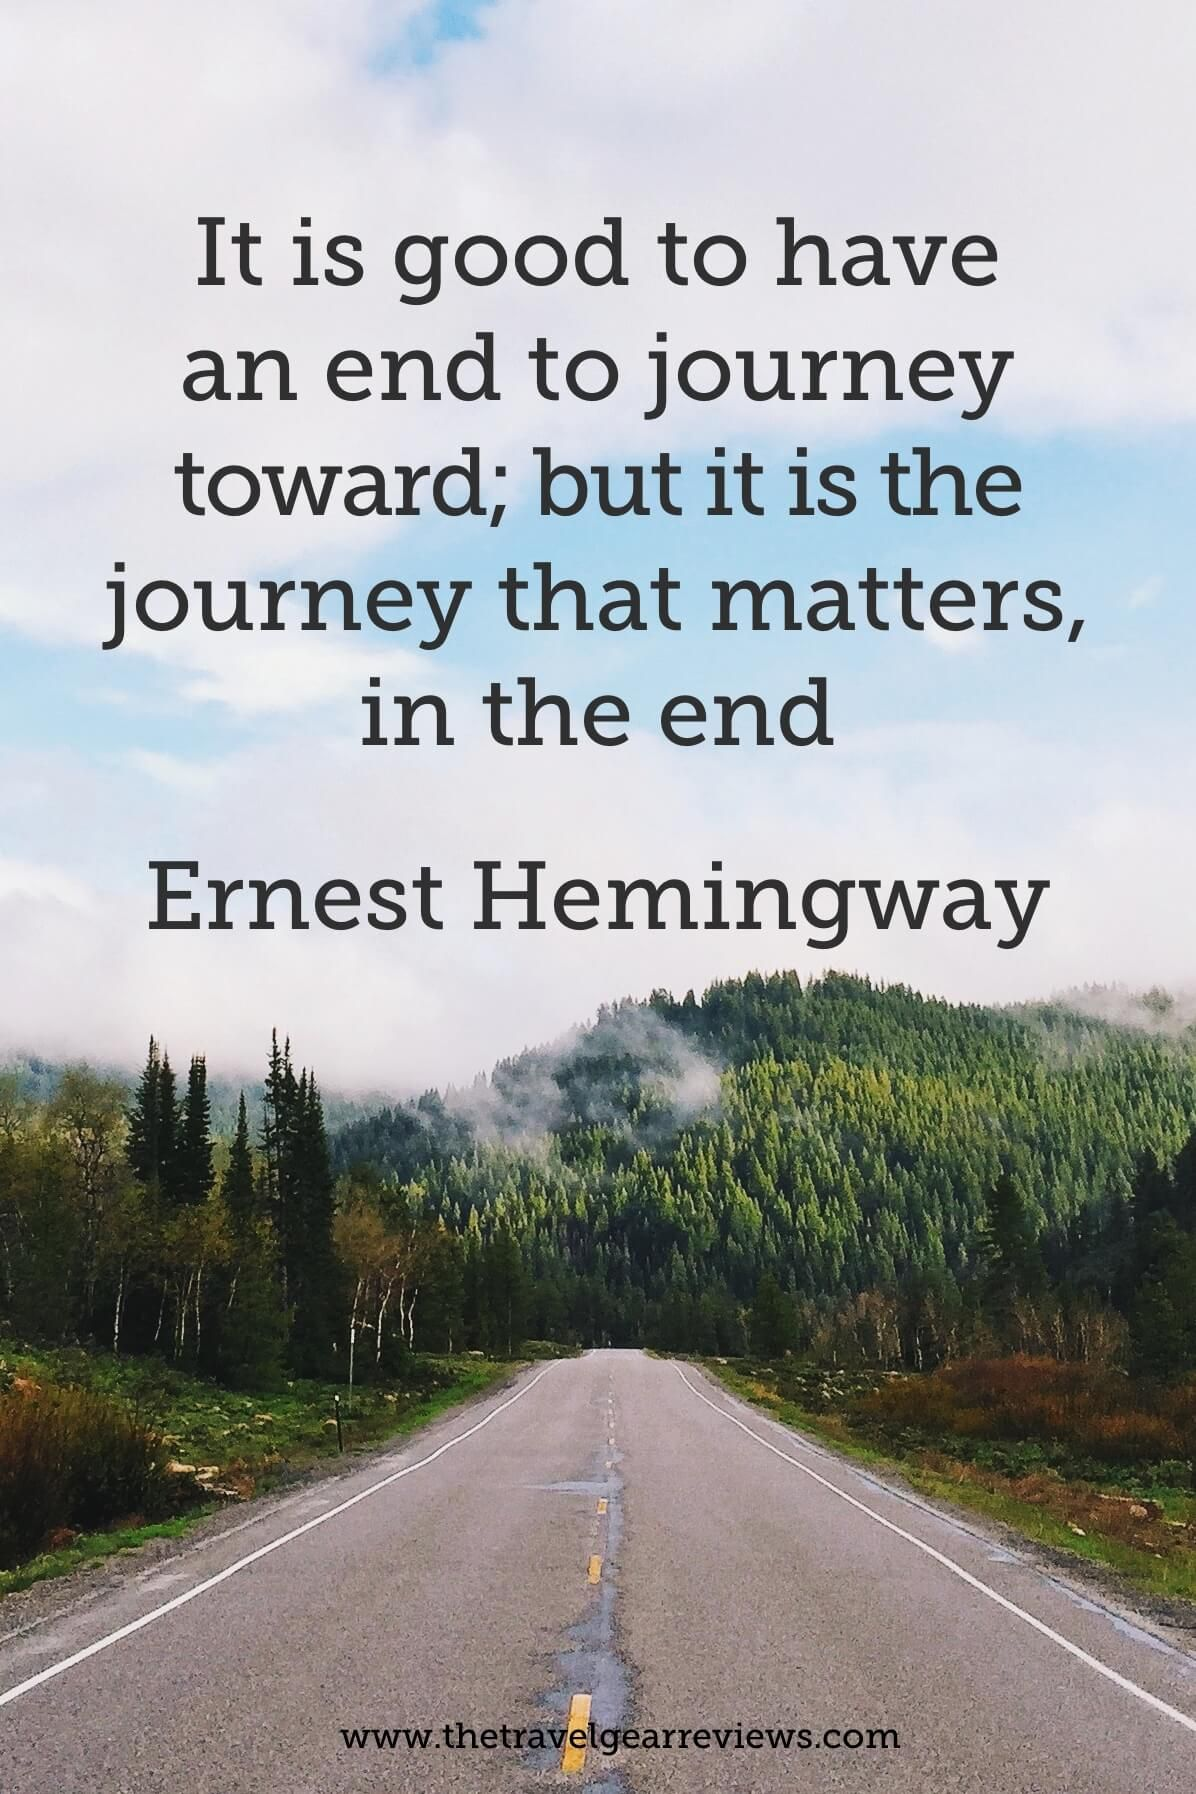 100 Best Travel Quotes and Saying | Journey quotes, New ...